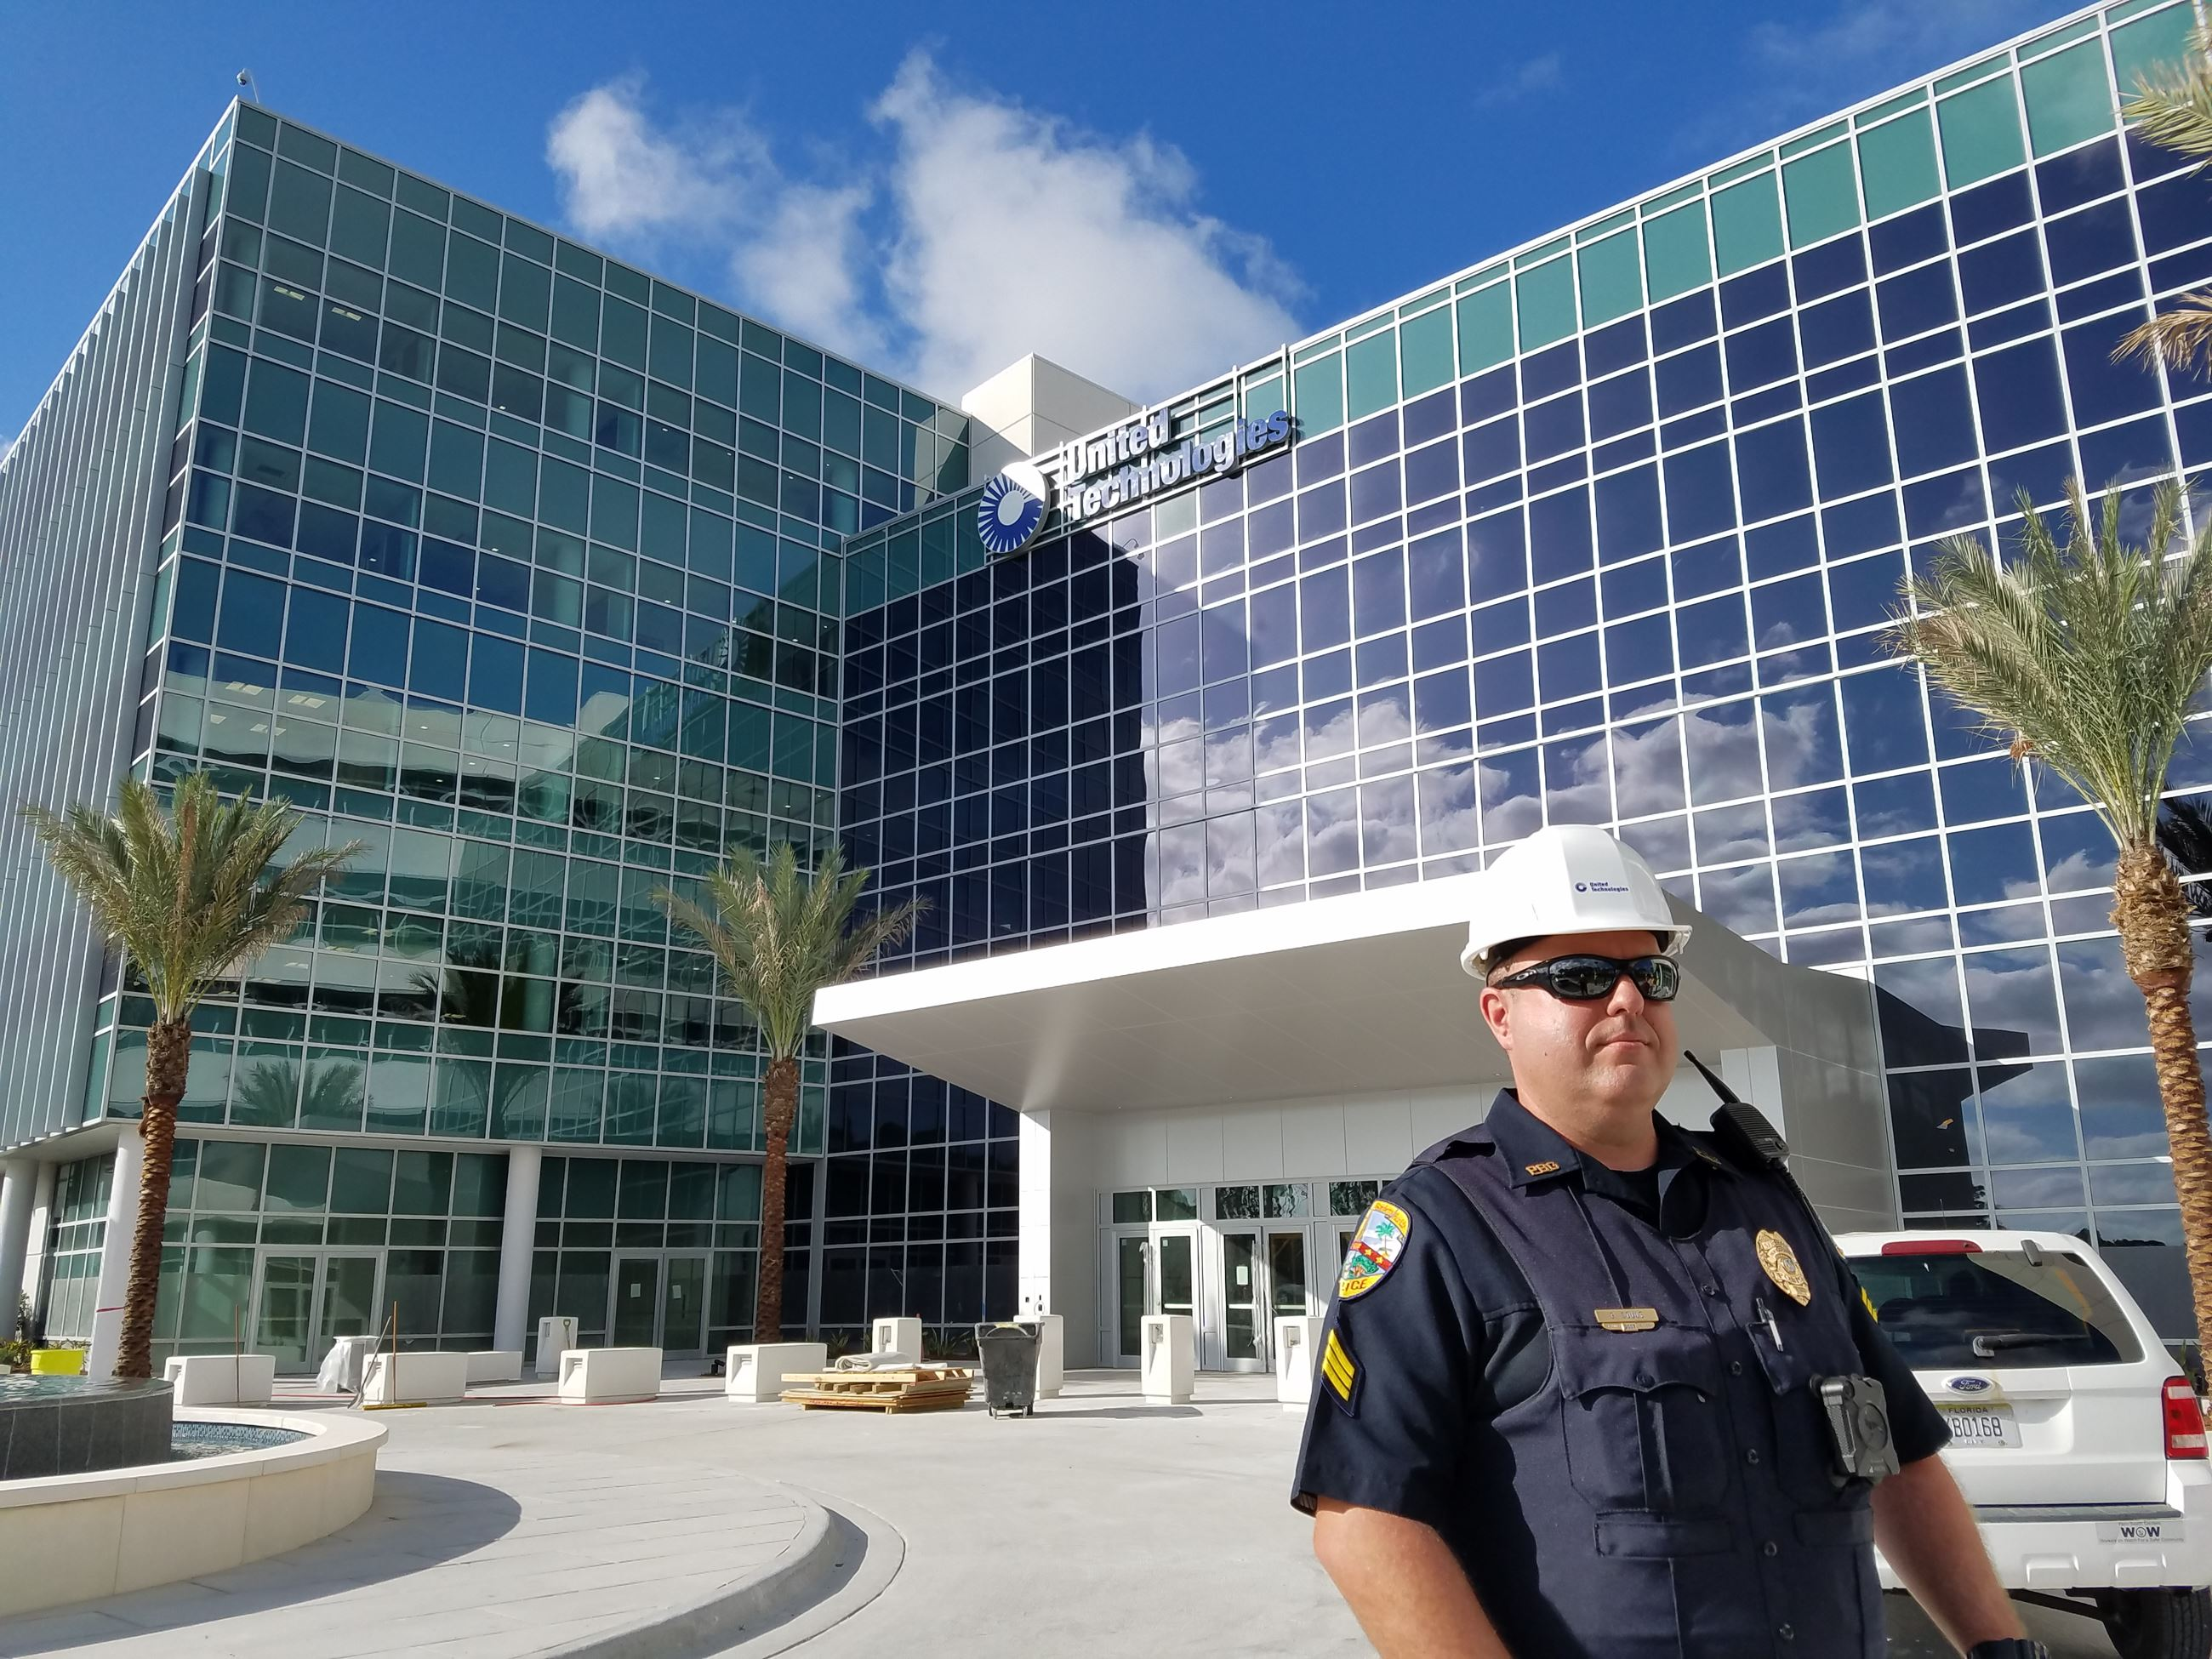 Image of a Sergeant standing in front of a building